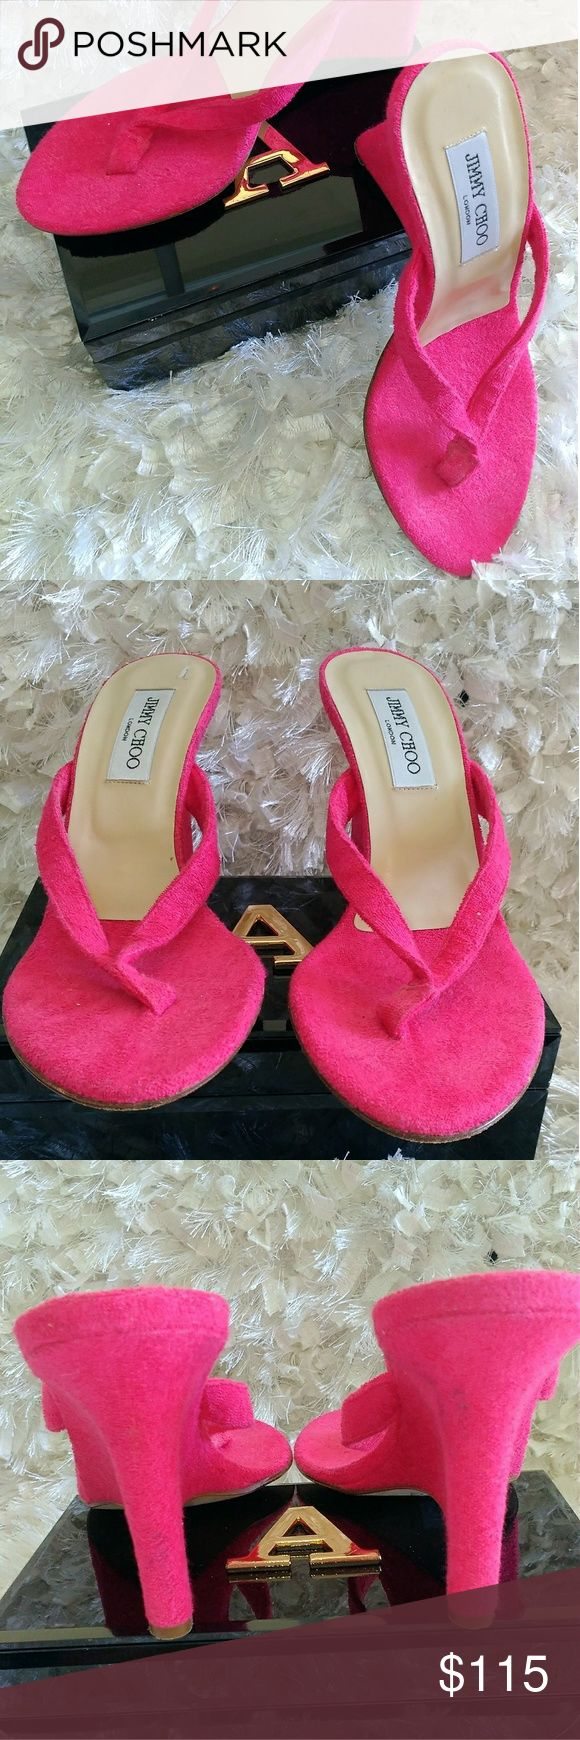 Hot Pink Jimmy Choo Wedge Thong Sandals Hot pink Jimmy Choo sandals with wedge heel. Summery, sassy and perfect for your summer excursions.   Jimmy Choo terry cloth wedges 38. Great, shape,  almost new.   Size:?8 Jimmy Choo Shoes